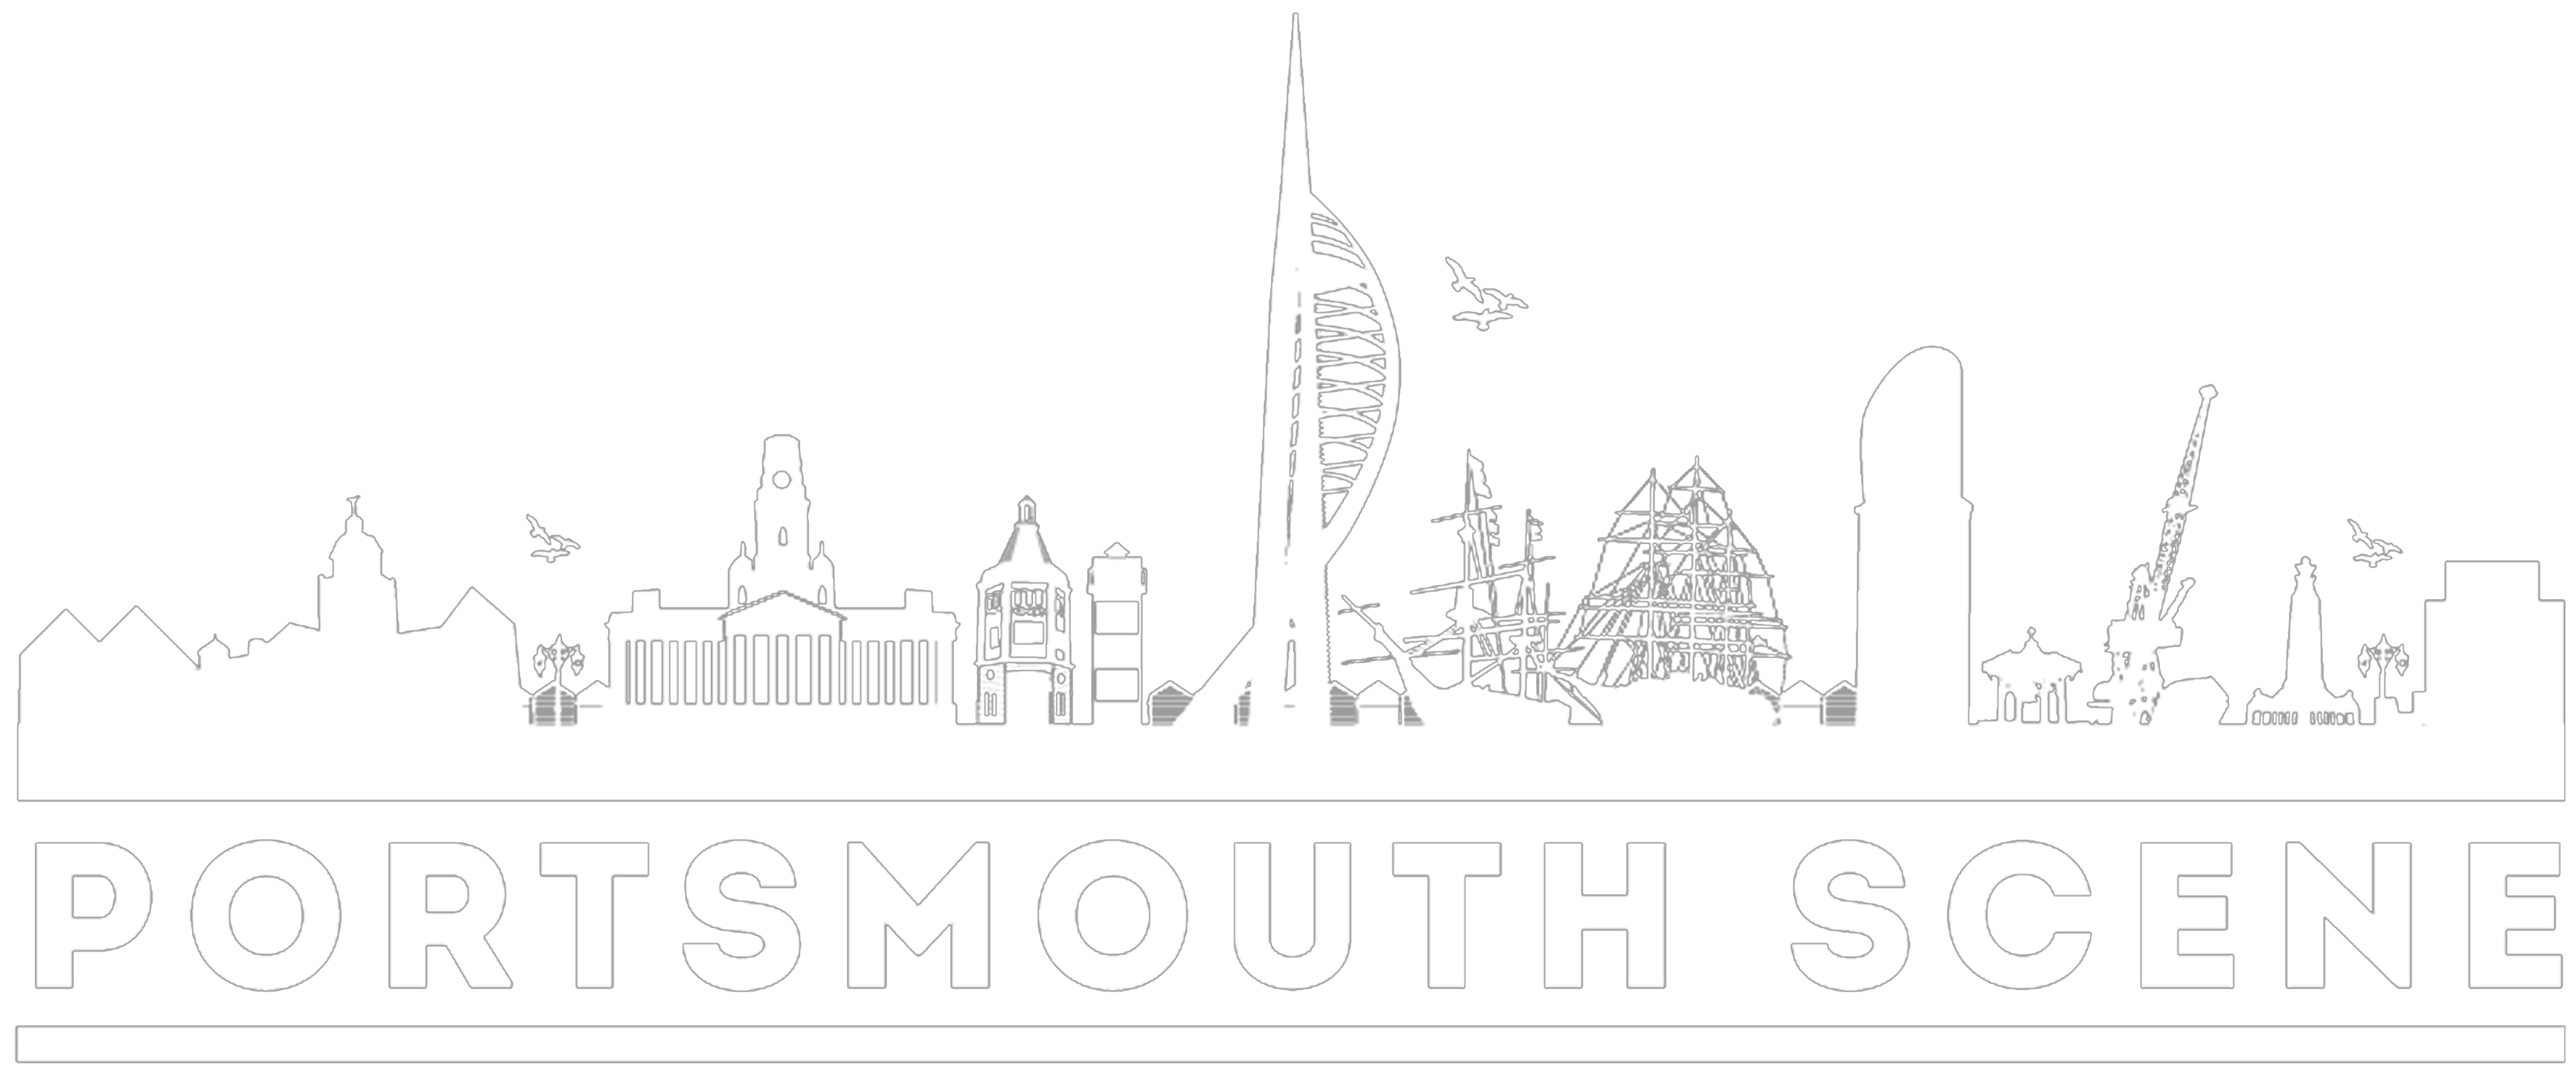 High end production support & event management for the south coast